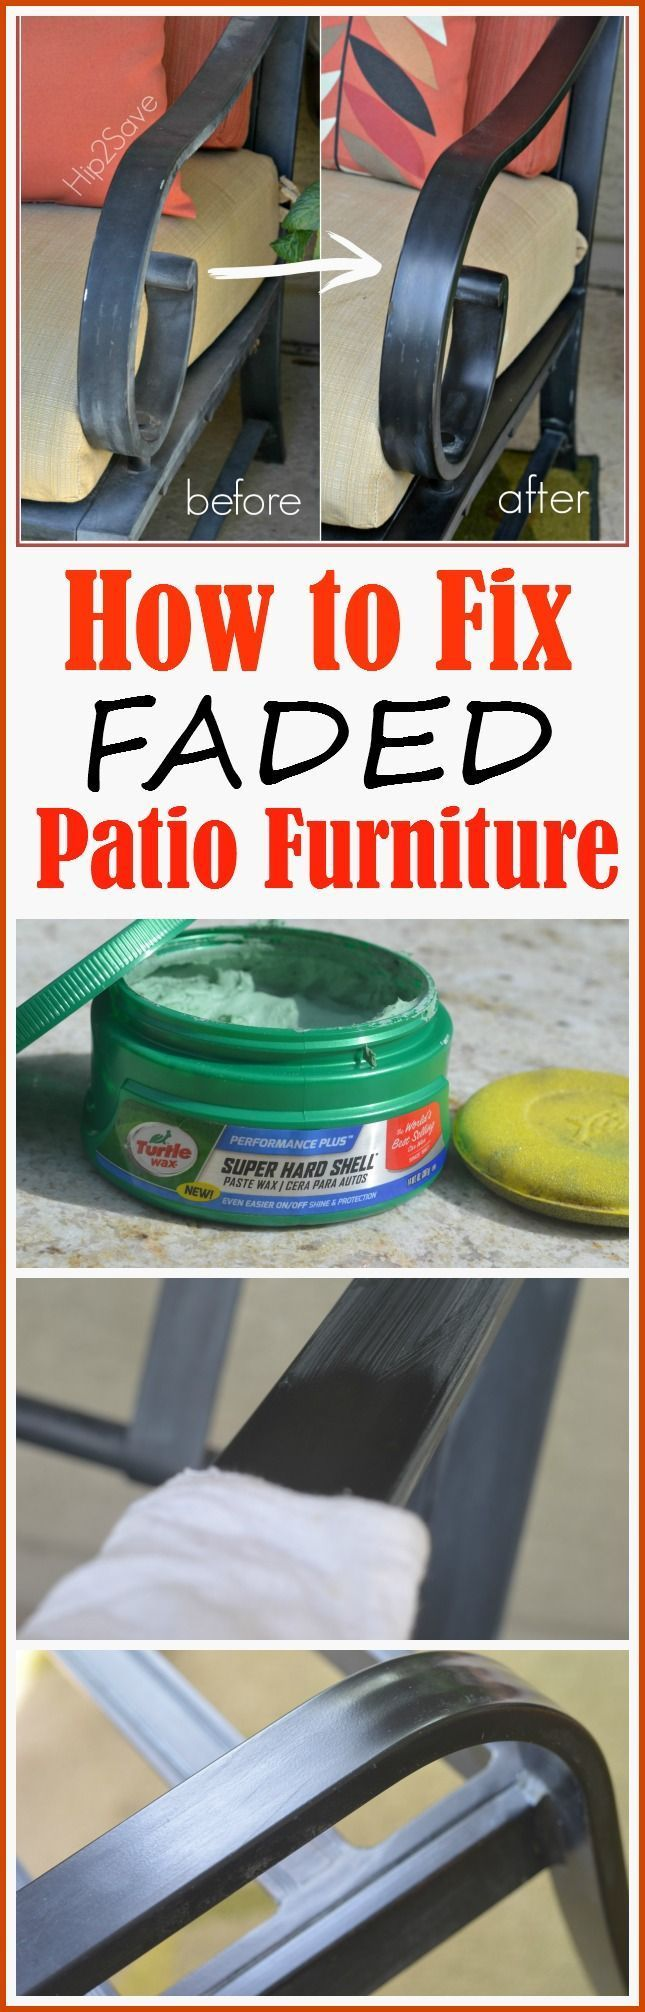 Are You Looking For A Way To Bring Back The Shine And Lustre On Your Faded